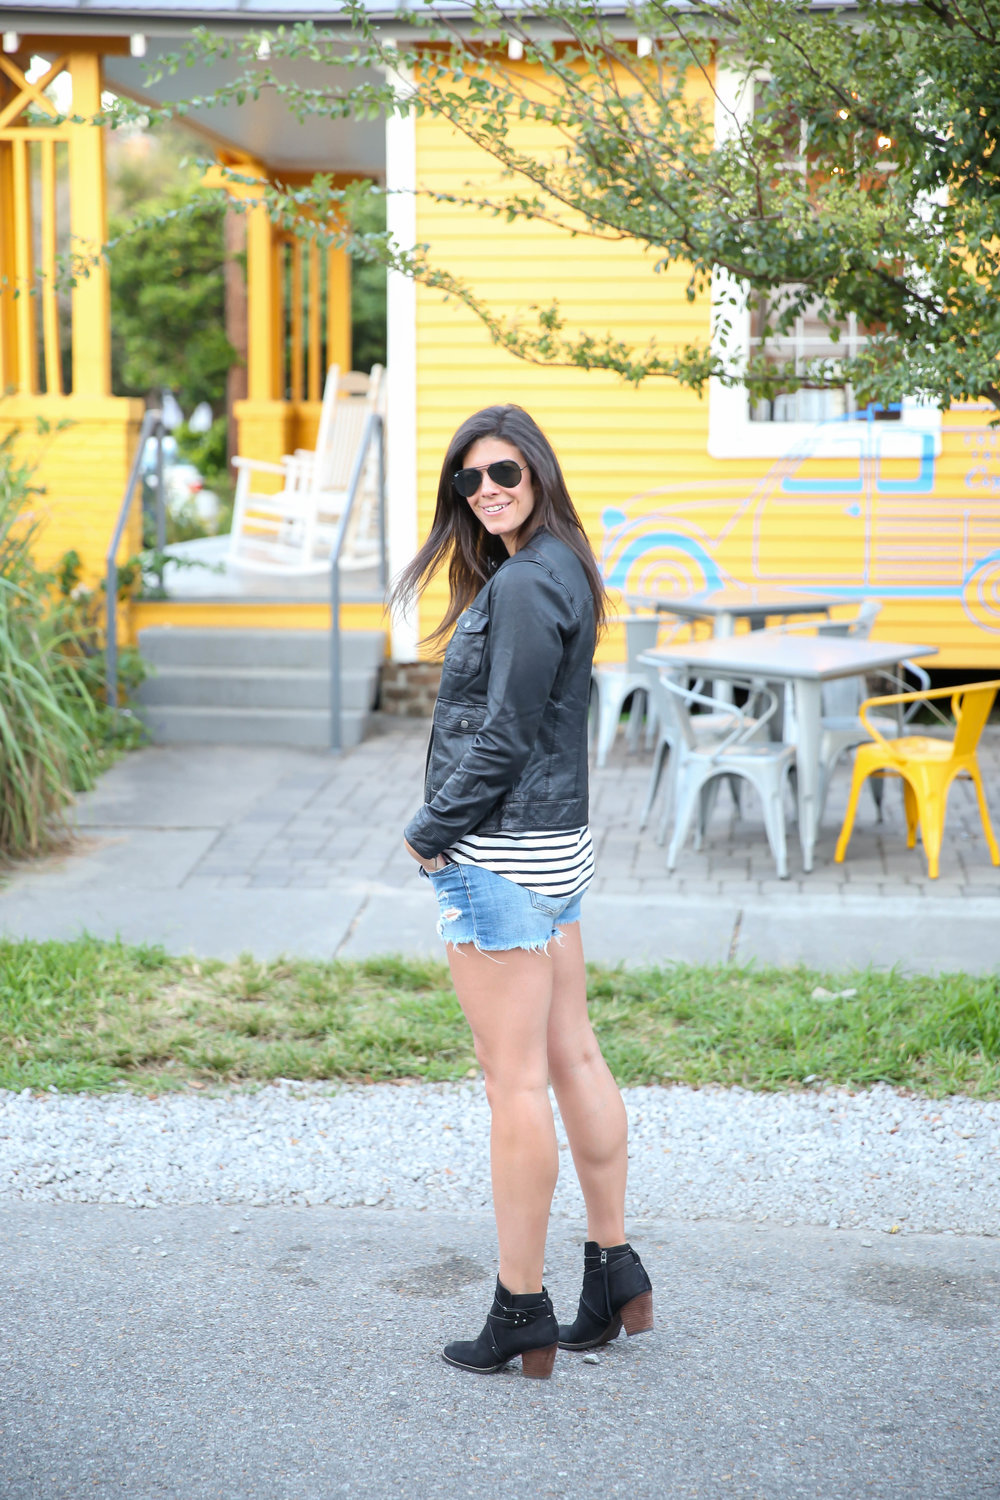 shorts-booties-long-lseeve-leather-jacket-fall-style-lauren-schwaiger-style-blog.jpg